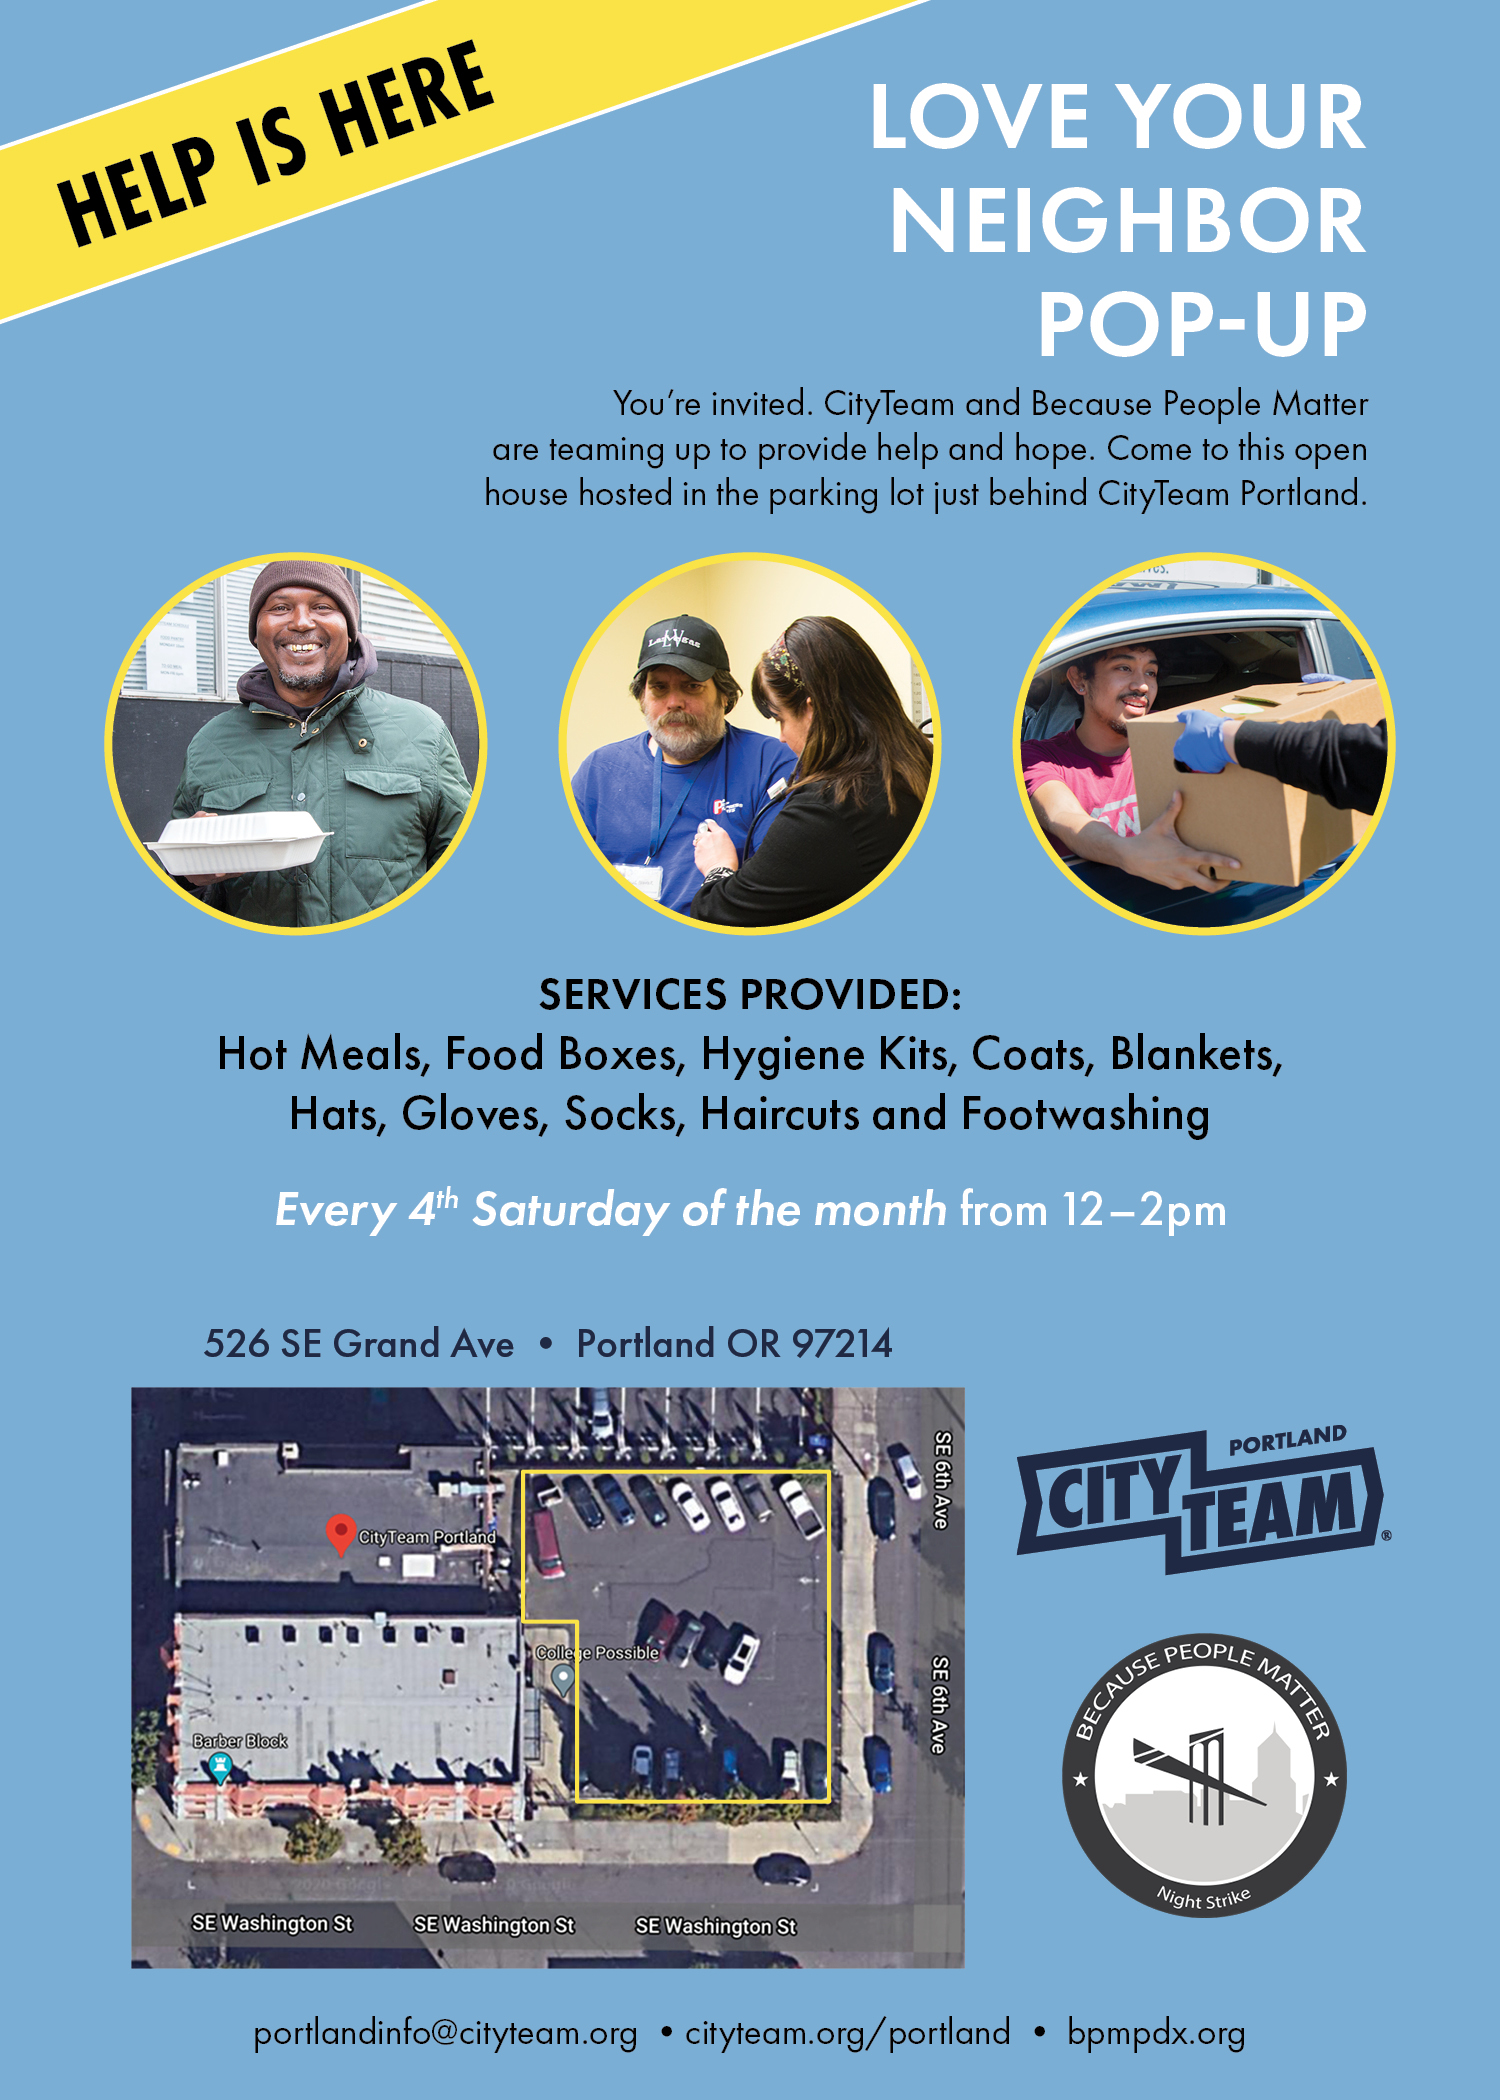 Love Your Neighbor Pop-Up flyer - every 4th Saturday